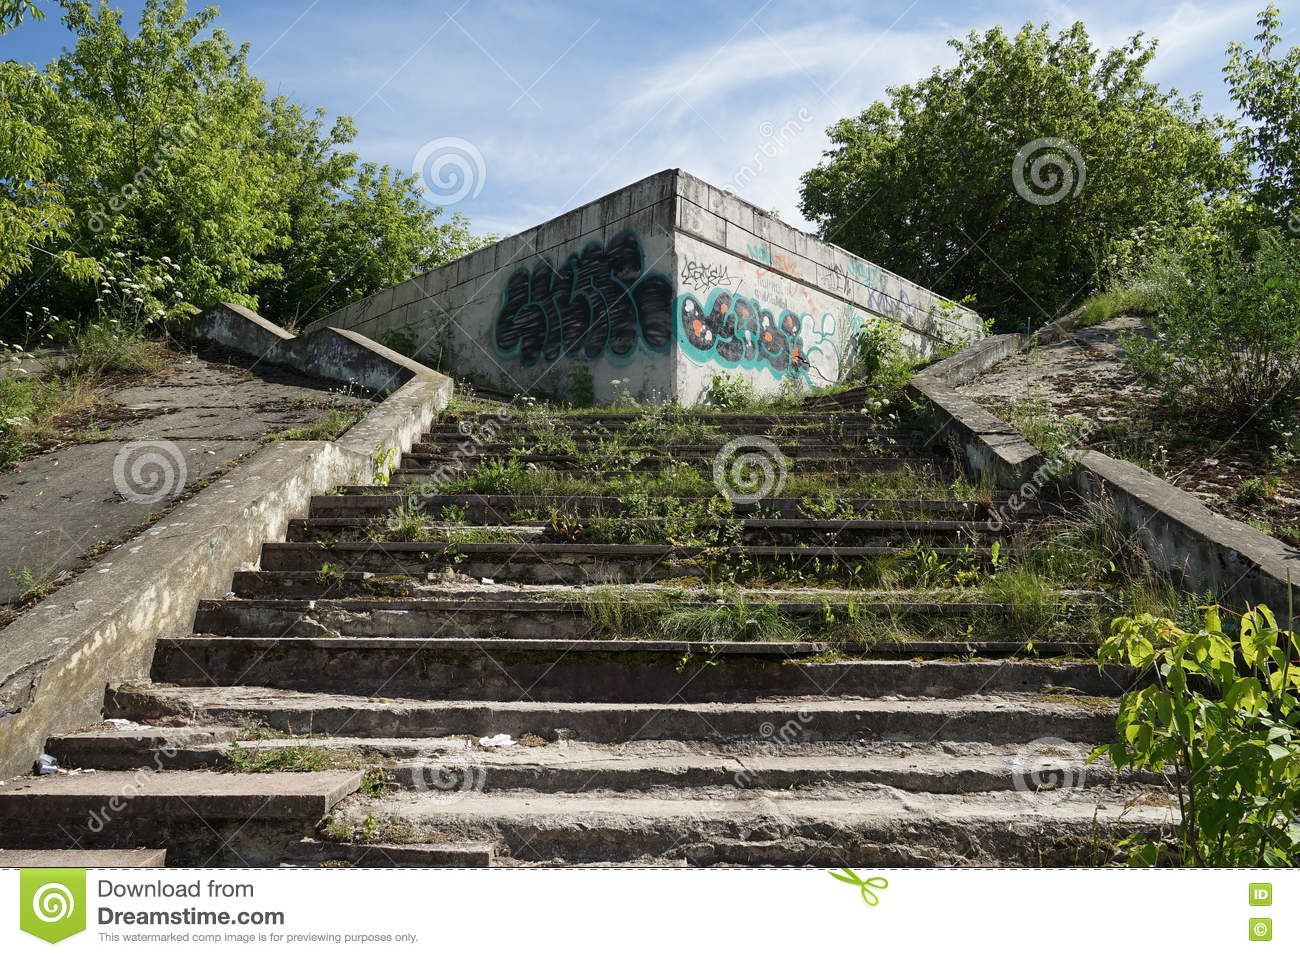 Download Old Staircase Stock Photo. Image Of Architecture, Staircase    73747598